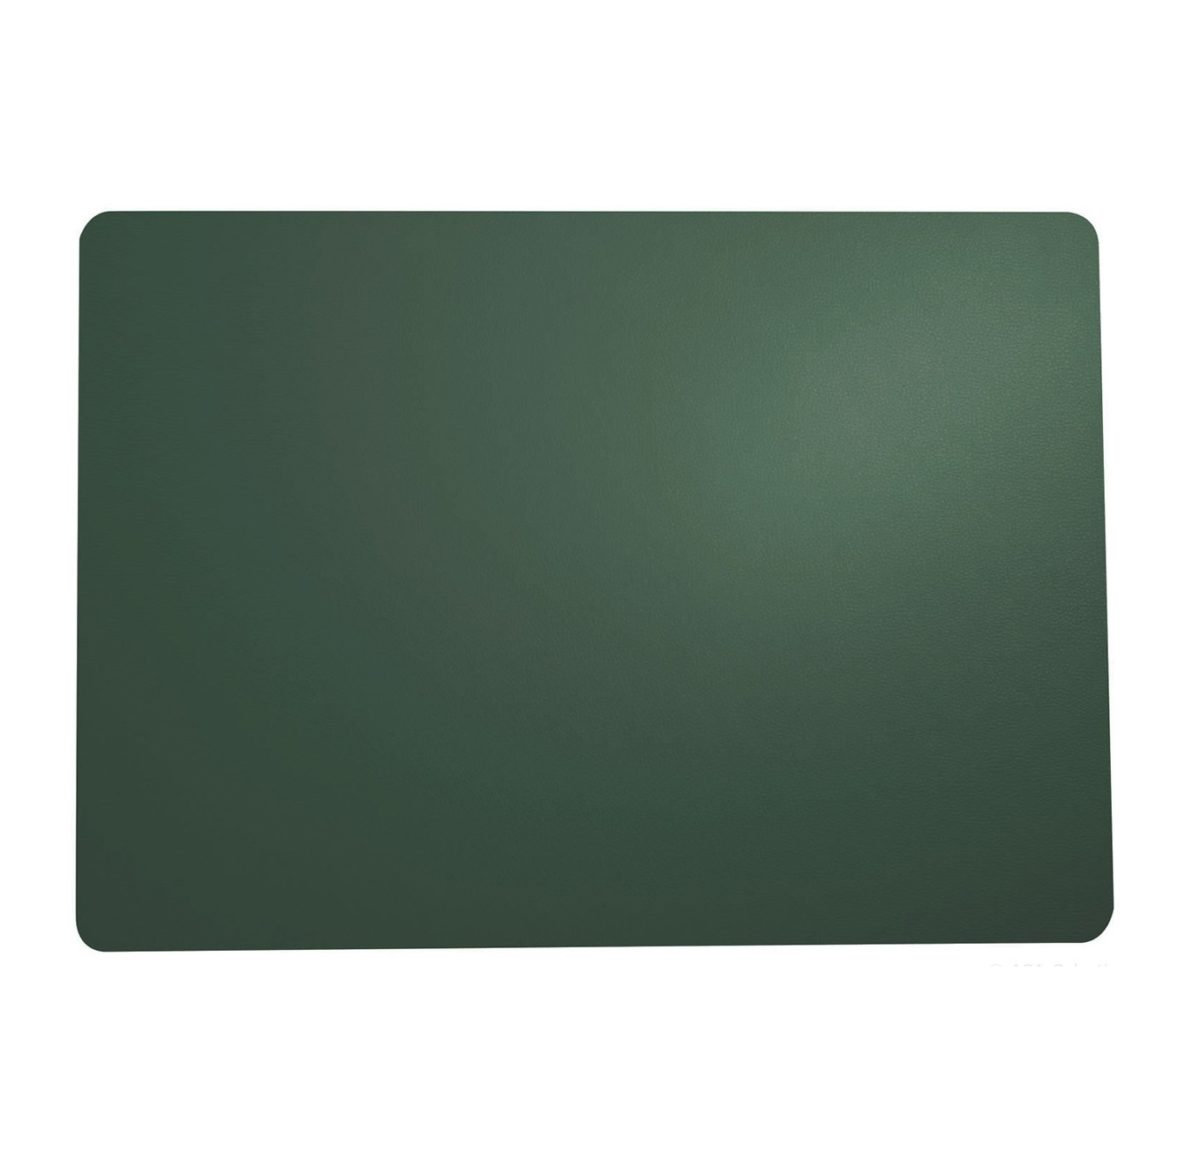 7810420 kale 1200x1159 - Placemat Leather optic metallic kale 46*33 cm (7810420)